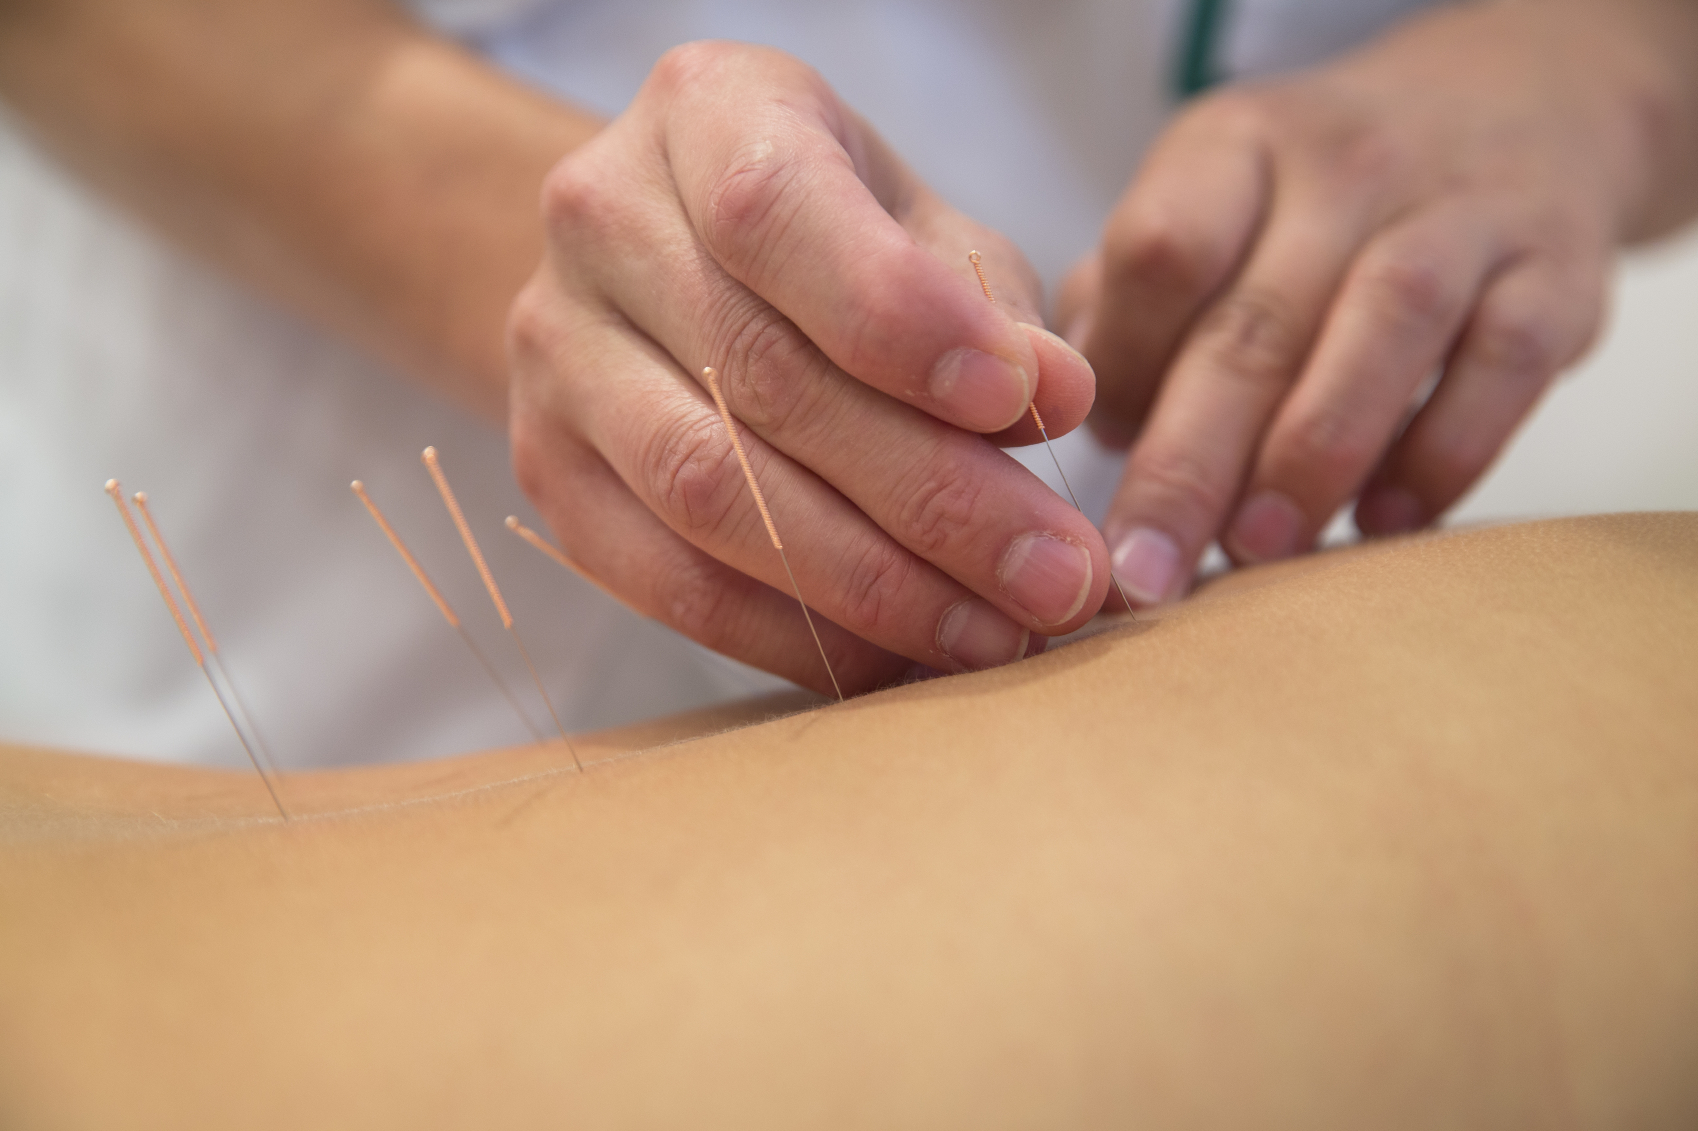 MUM SLAMS ACUPUNCTURE CLINIC AS CRUEL FOR OFFERING TO 'CURE' AUTISM